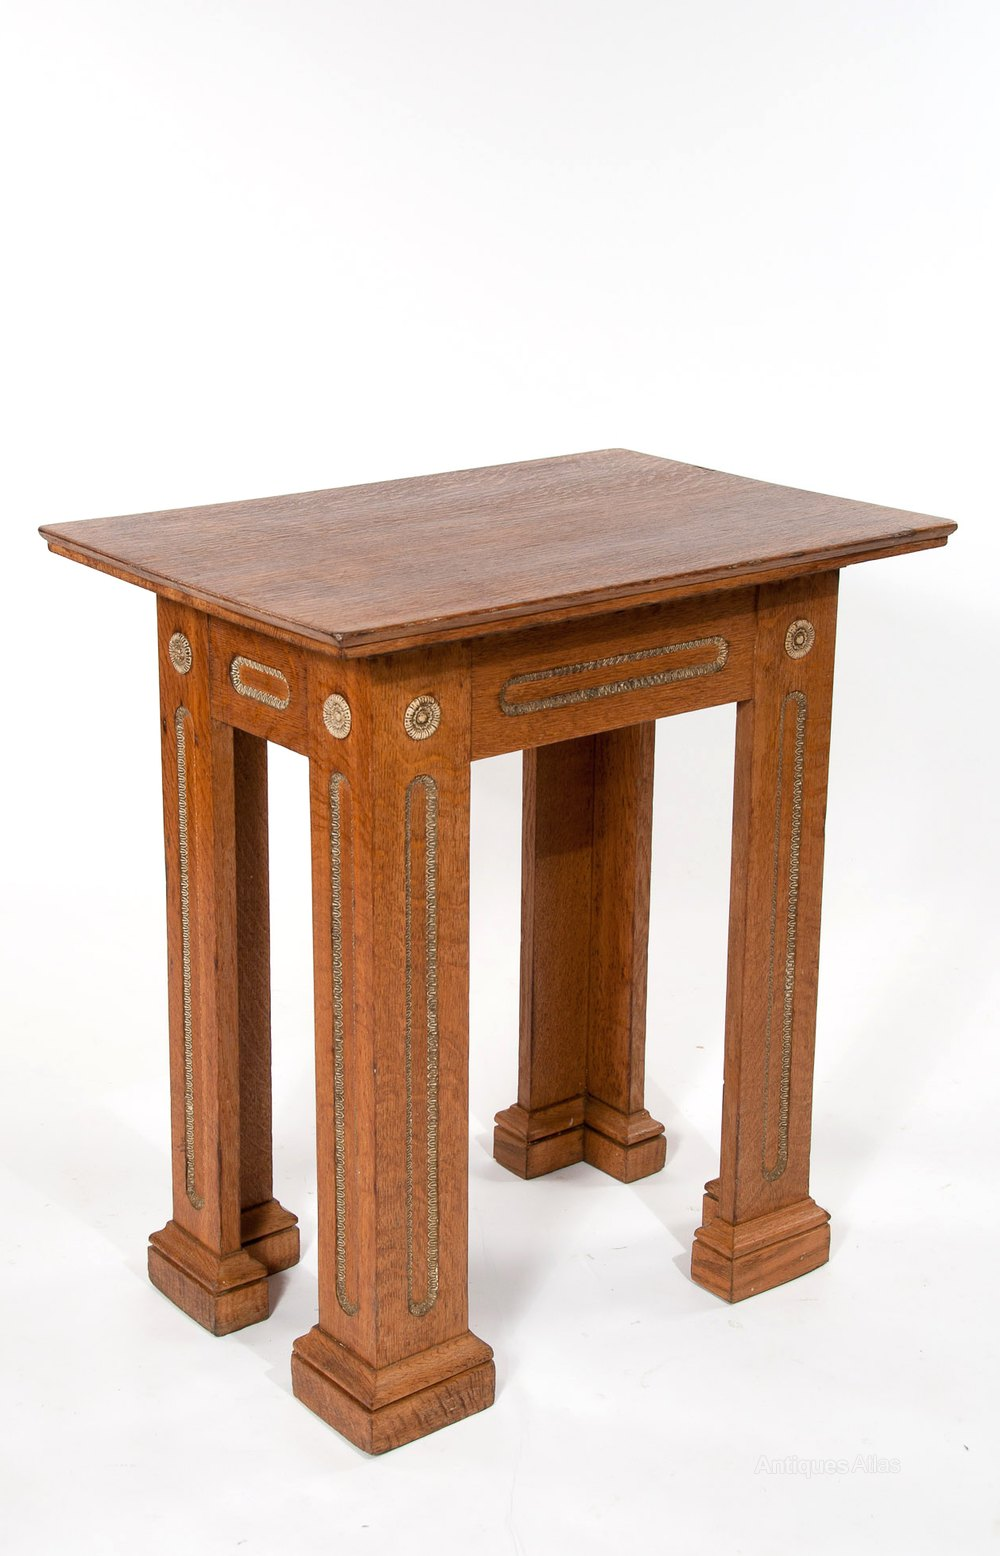 Antique Oak Table ~ An unusual antique oak architectural table antiques atlas